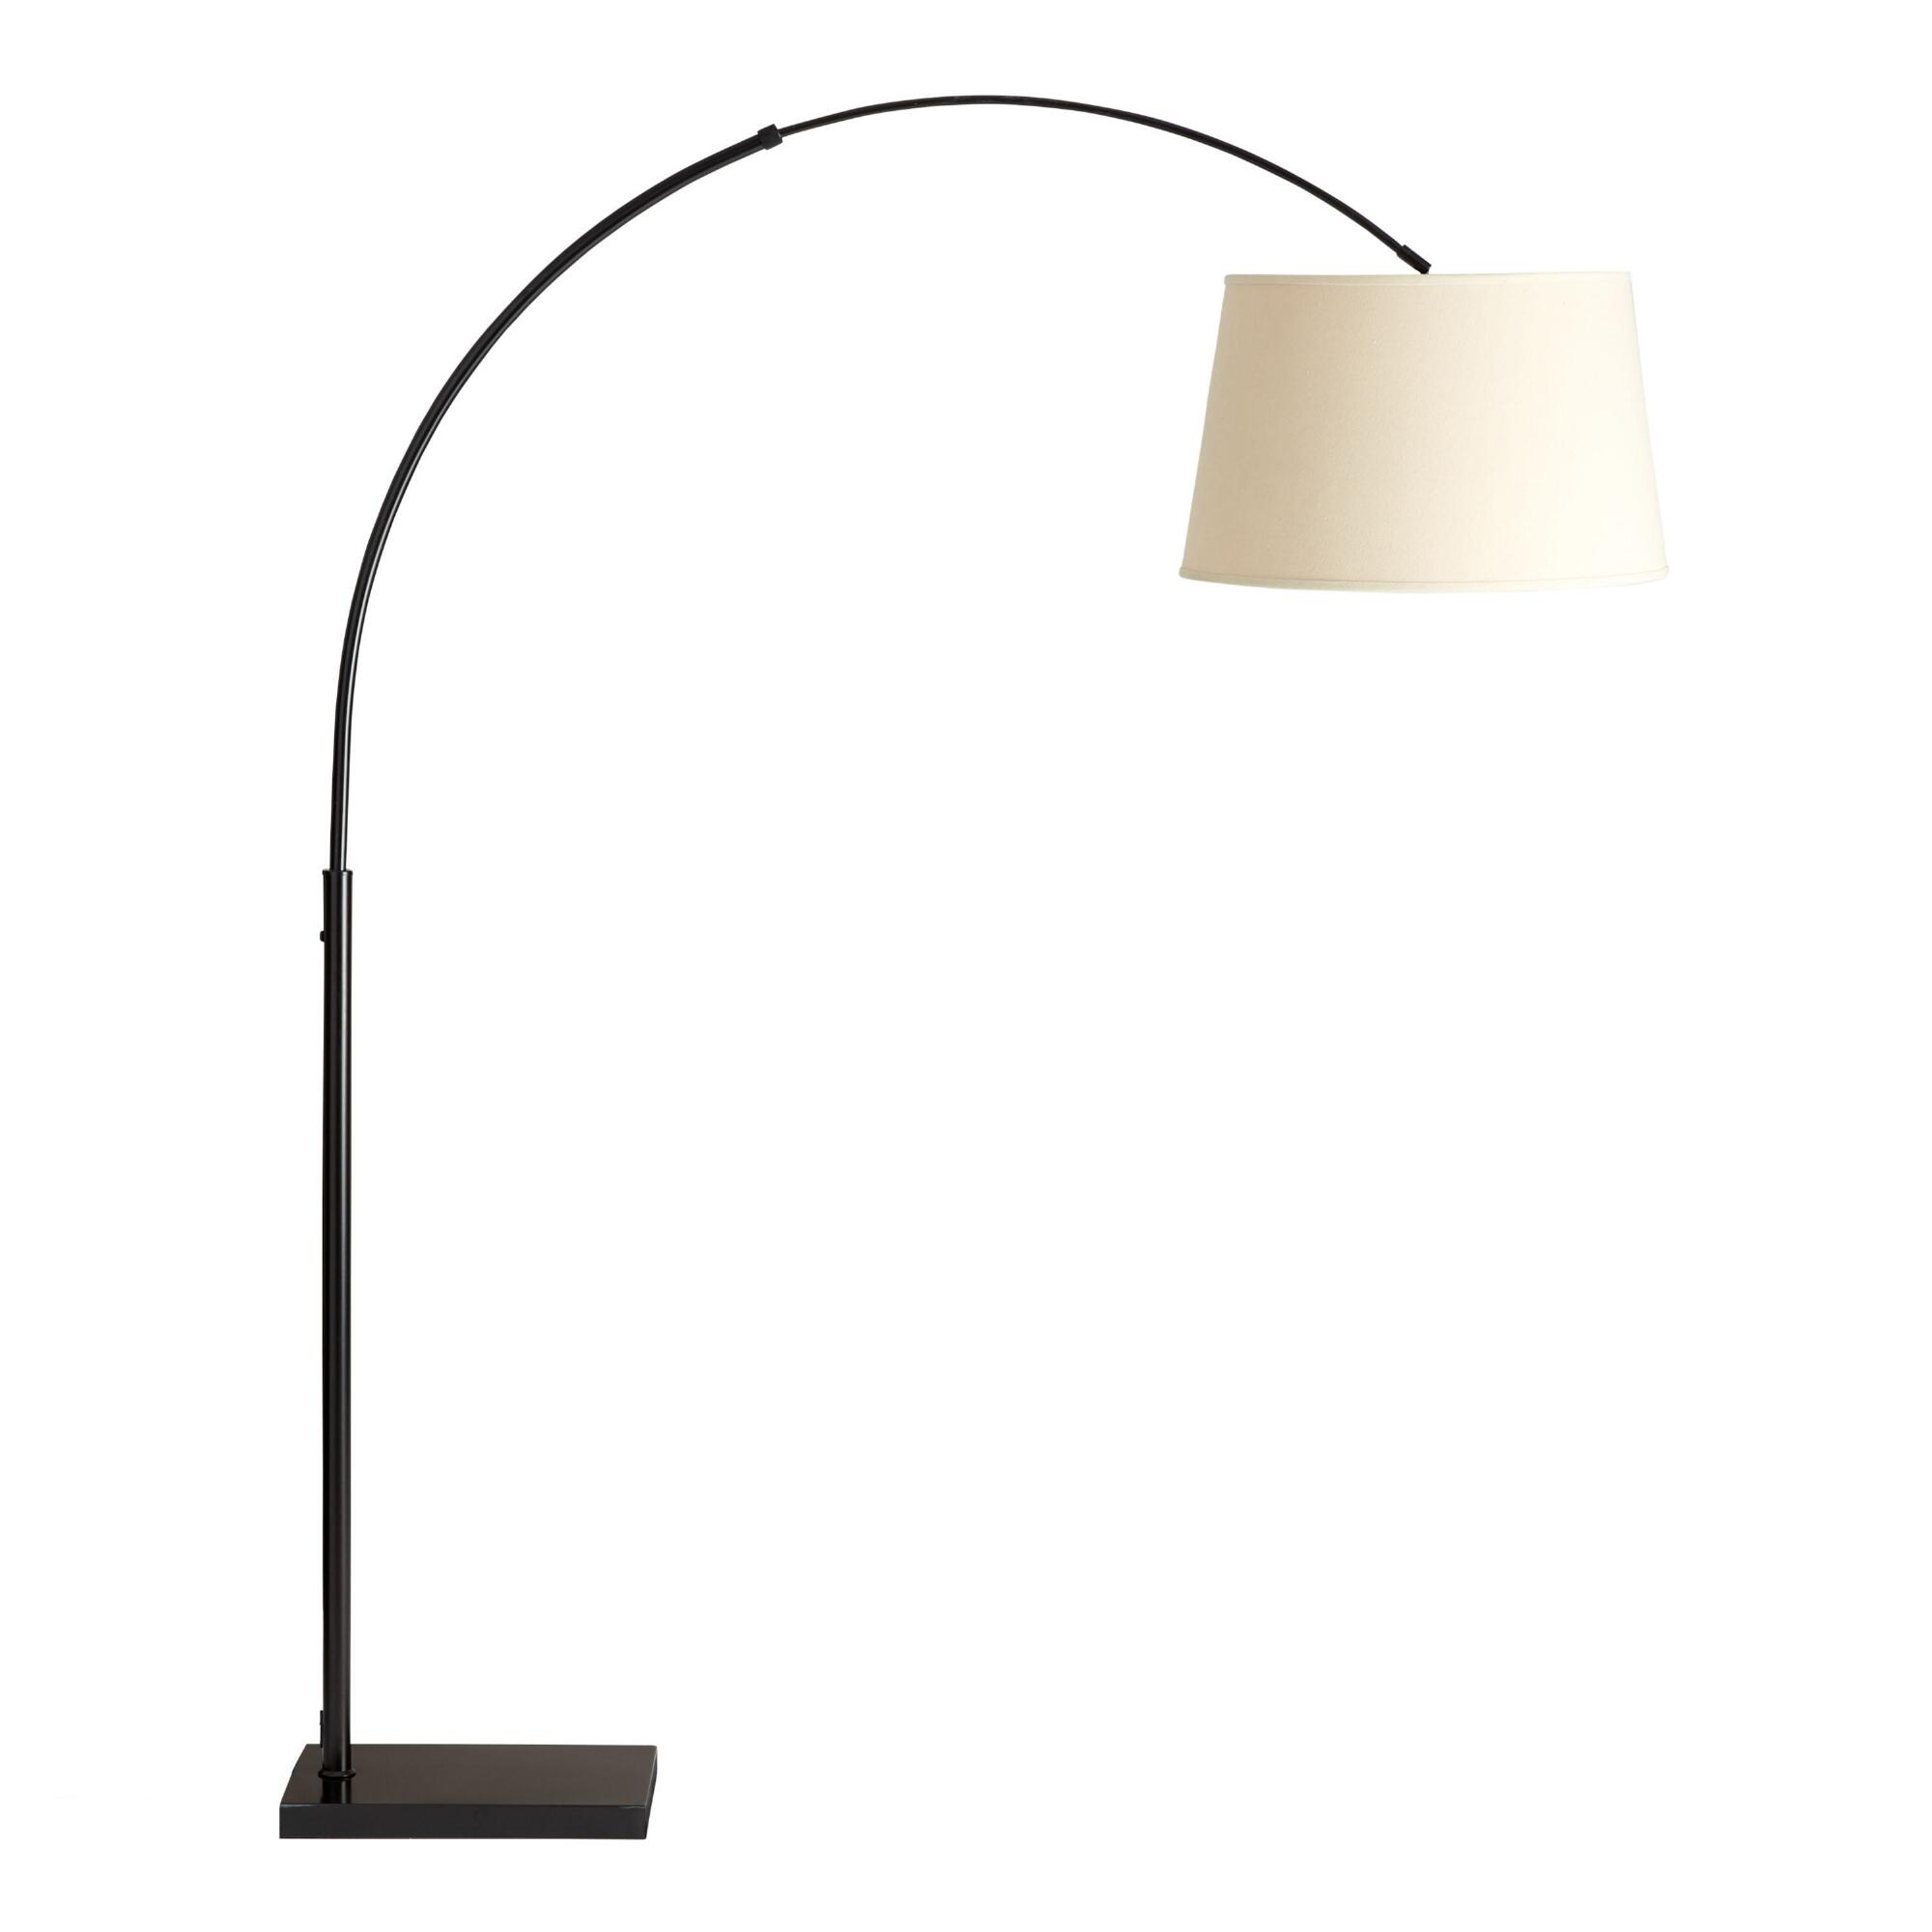 Loden Arc Floor Lamp Base: Brown - Metal by World Market